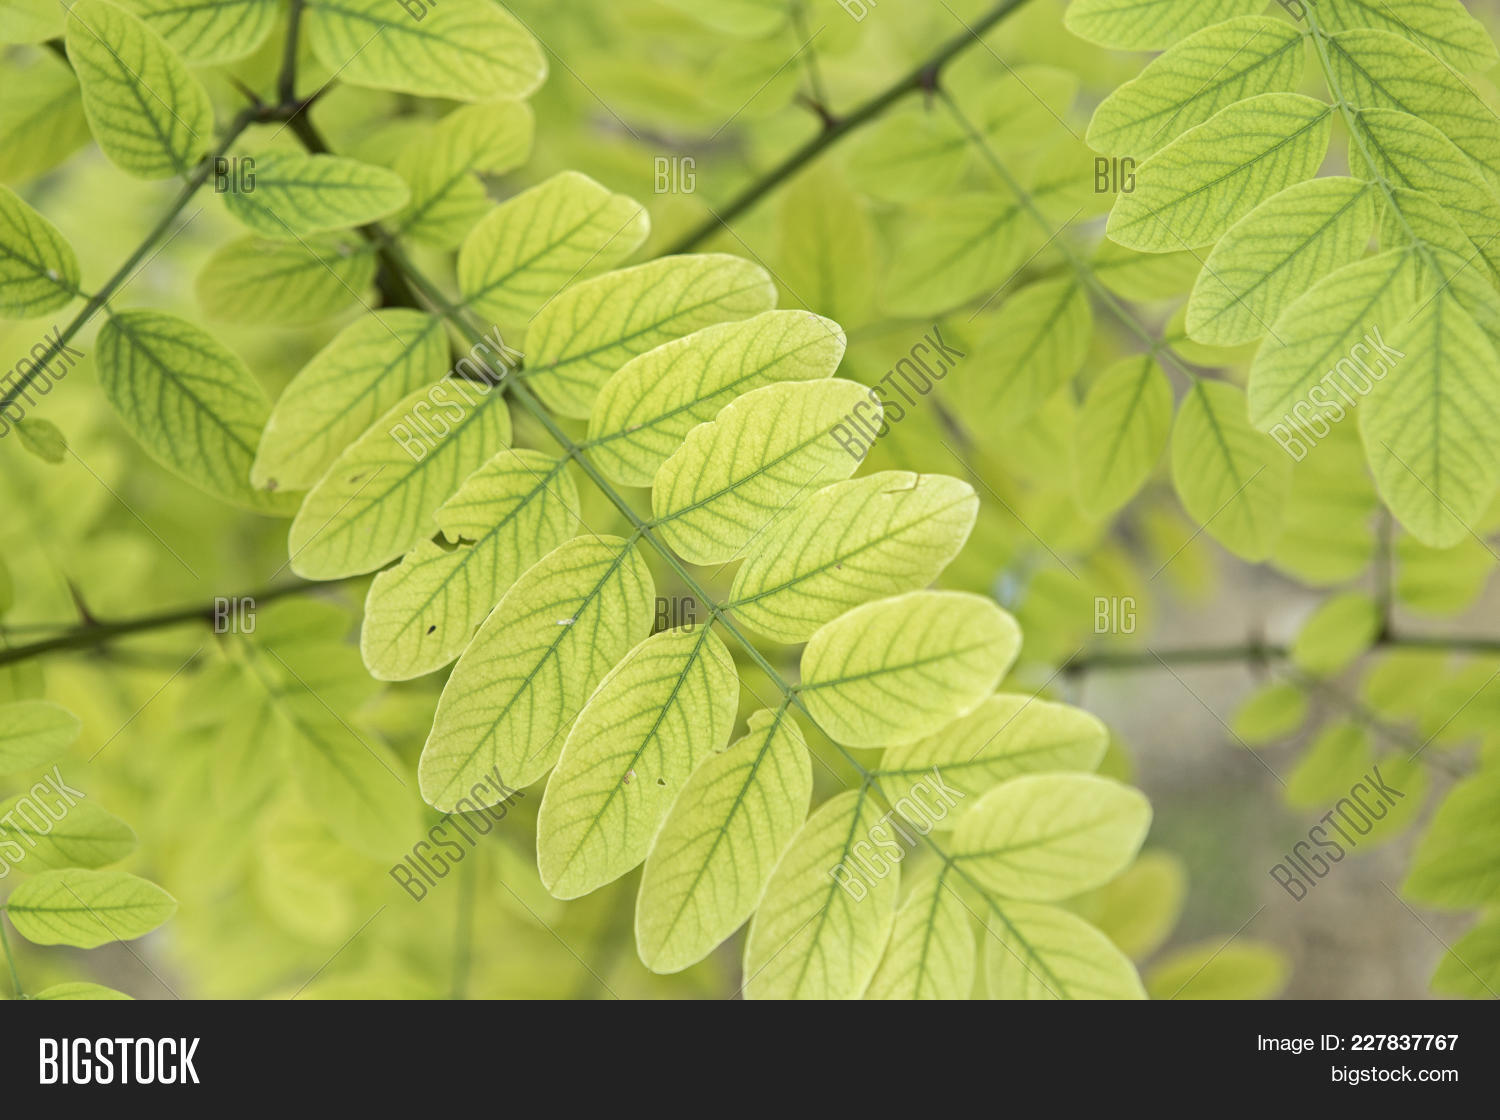 Acacia Leaves Summer Image Photo Free Trial Bigstock